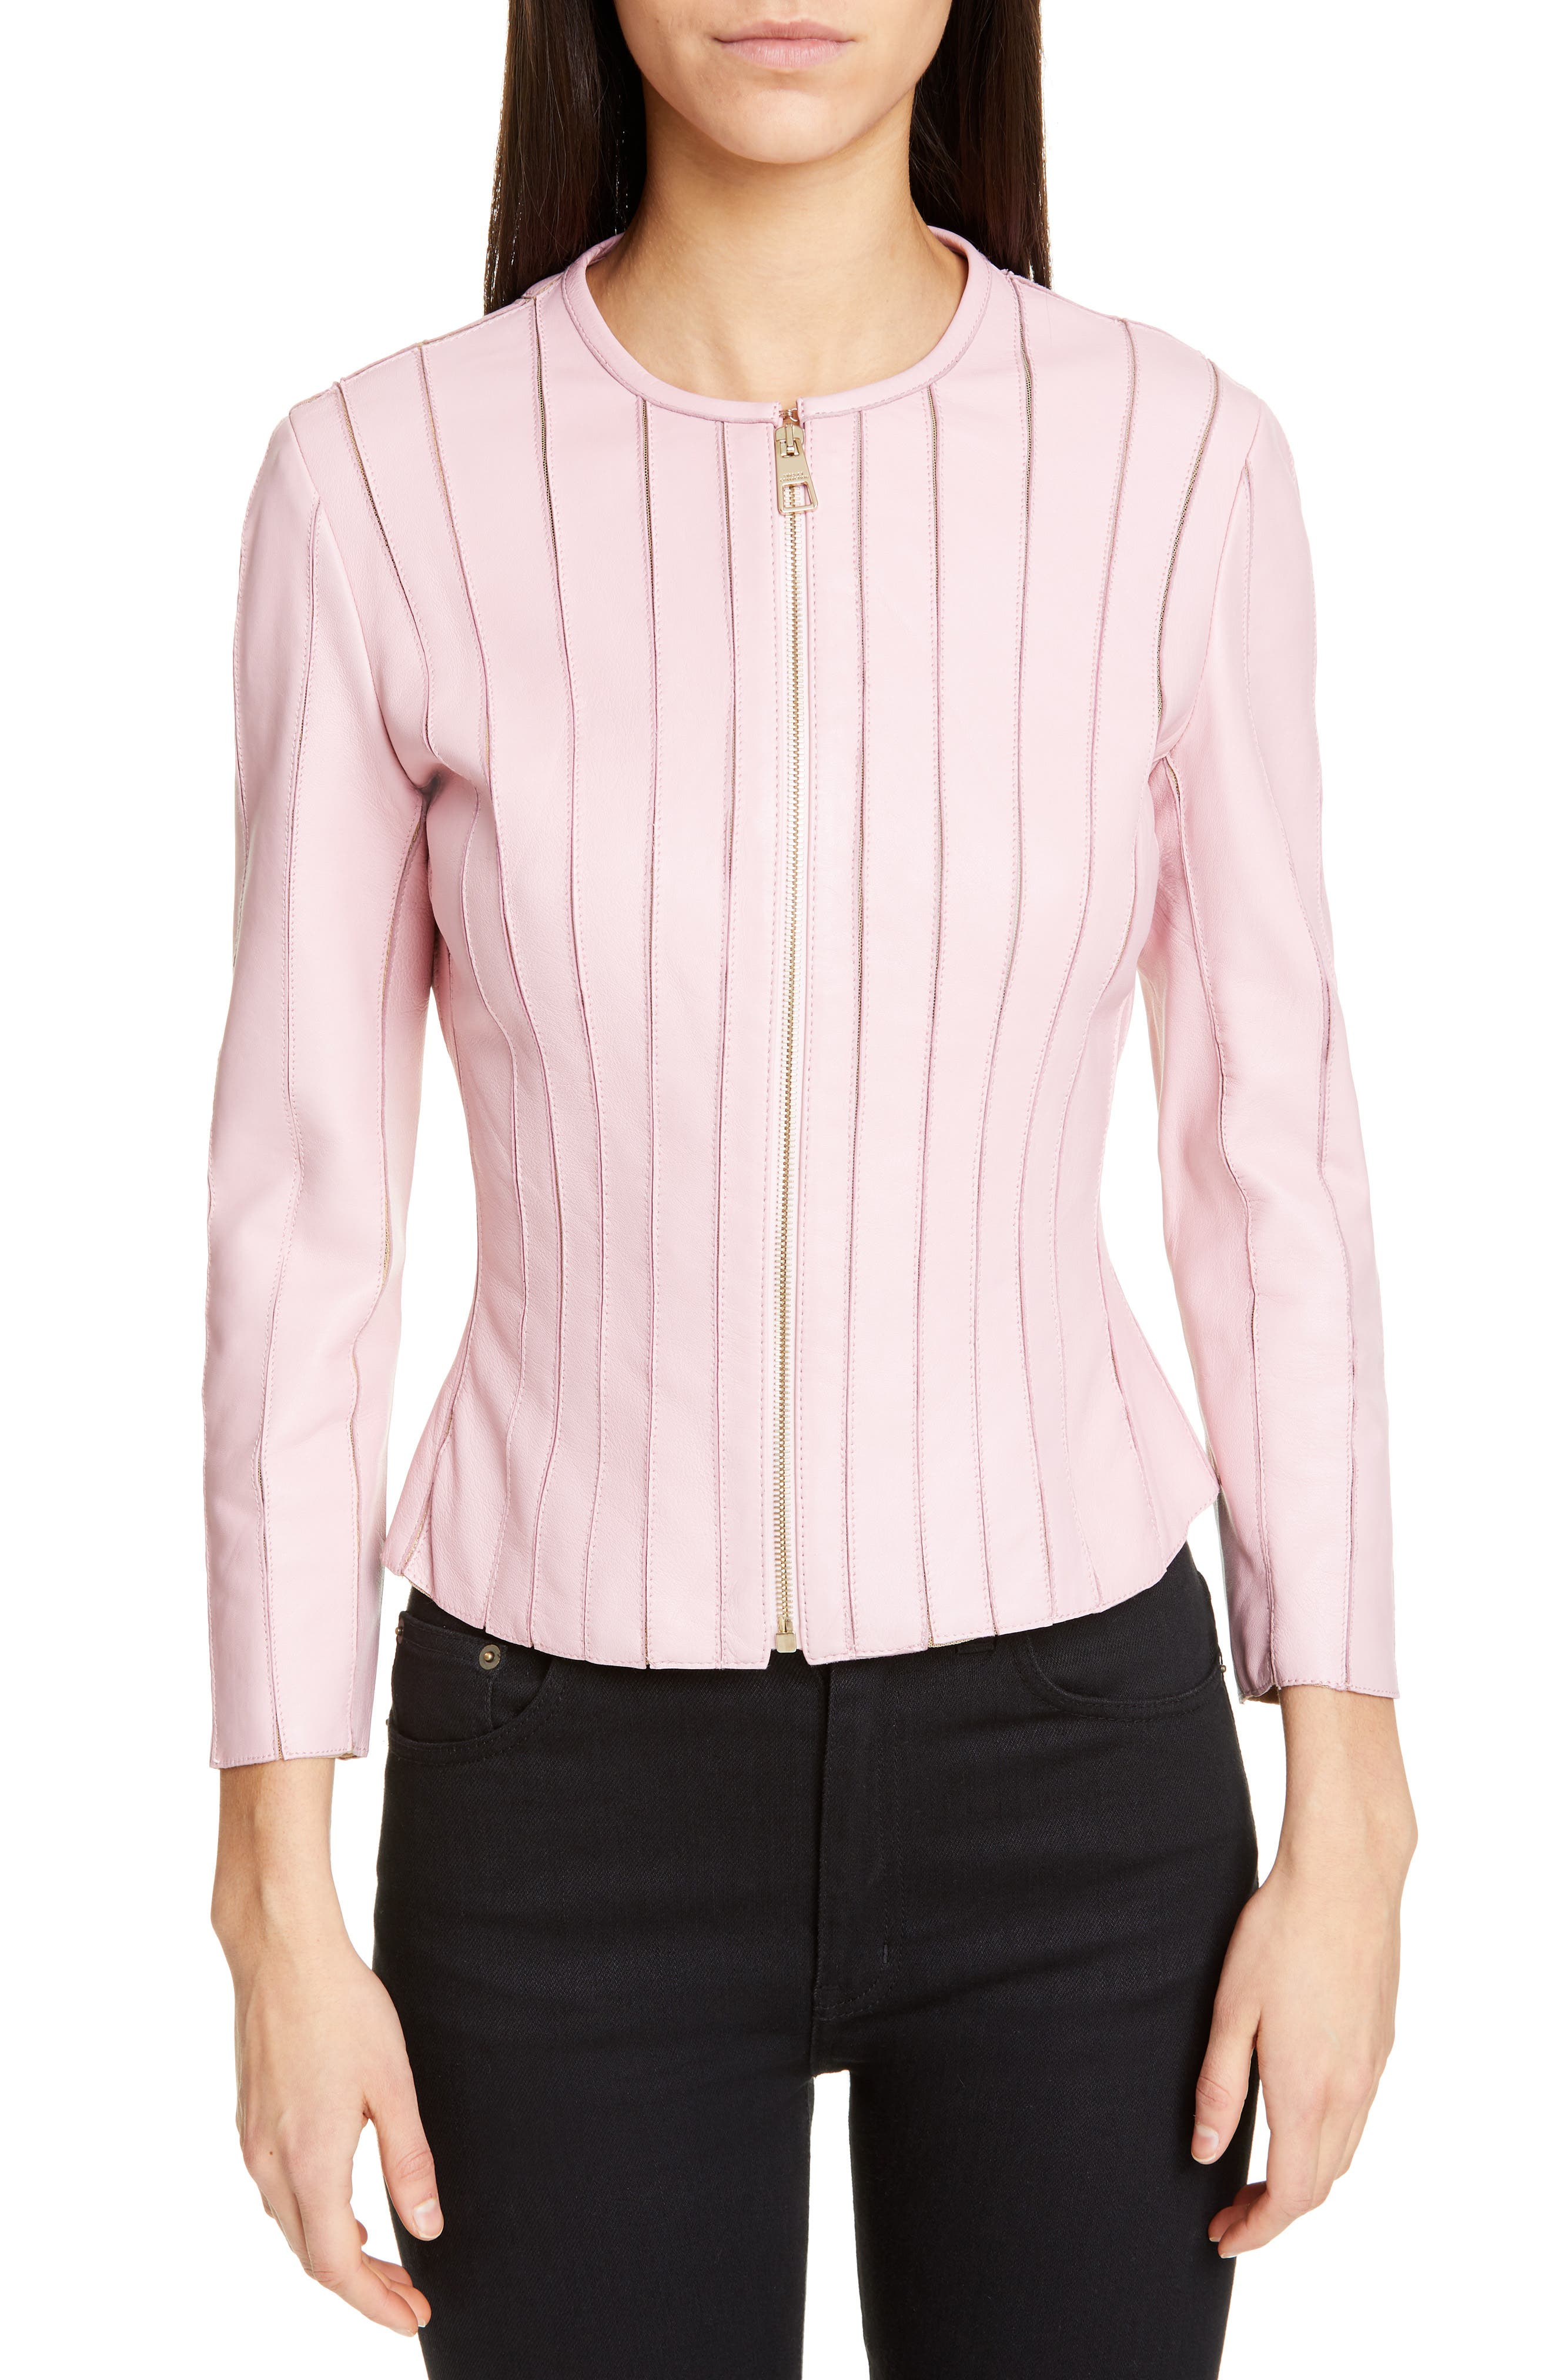 VERSACE COLLECTION Mesh Rib Leather Jacket, Main, color, PASTEL ROSE